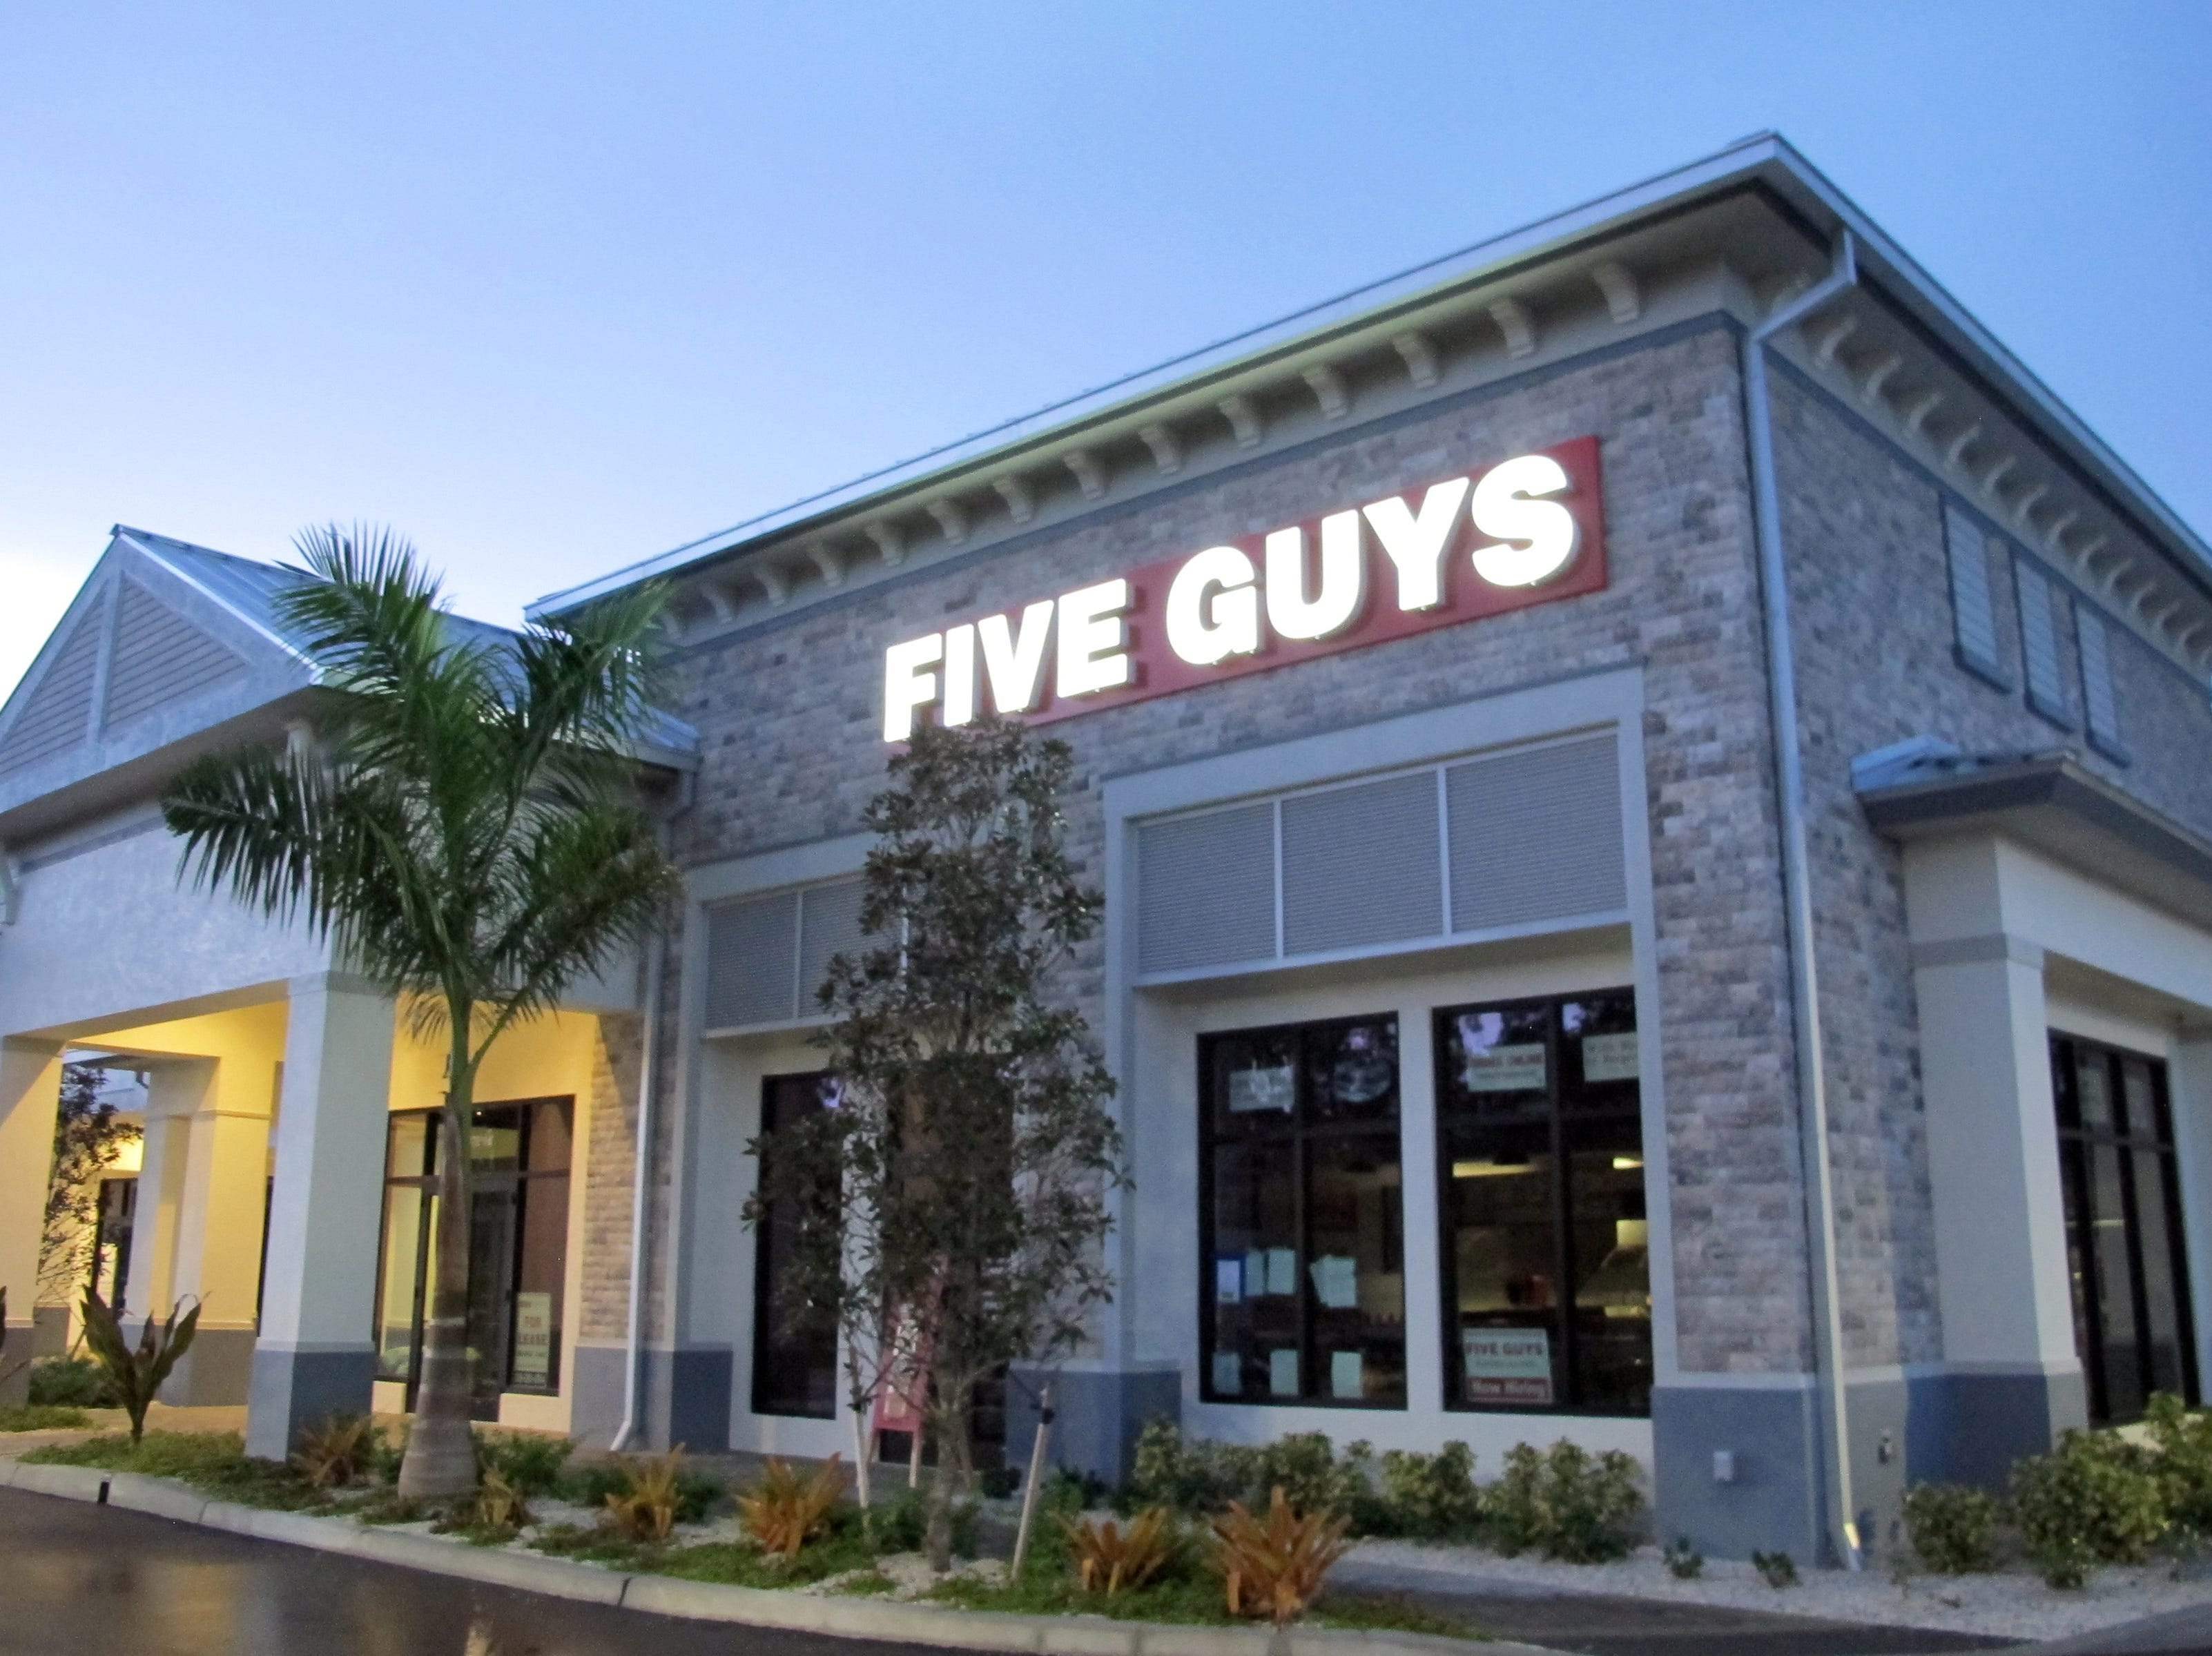 Five Guys Burgers & Fries opened a new location Oct. 1, 2018, on the eastern end of the new Vanderbilt Commons retail center on Vanderbilt Beach Road.